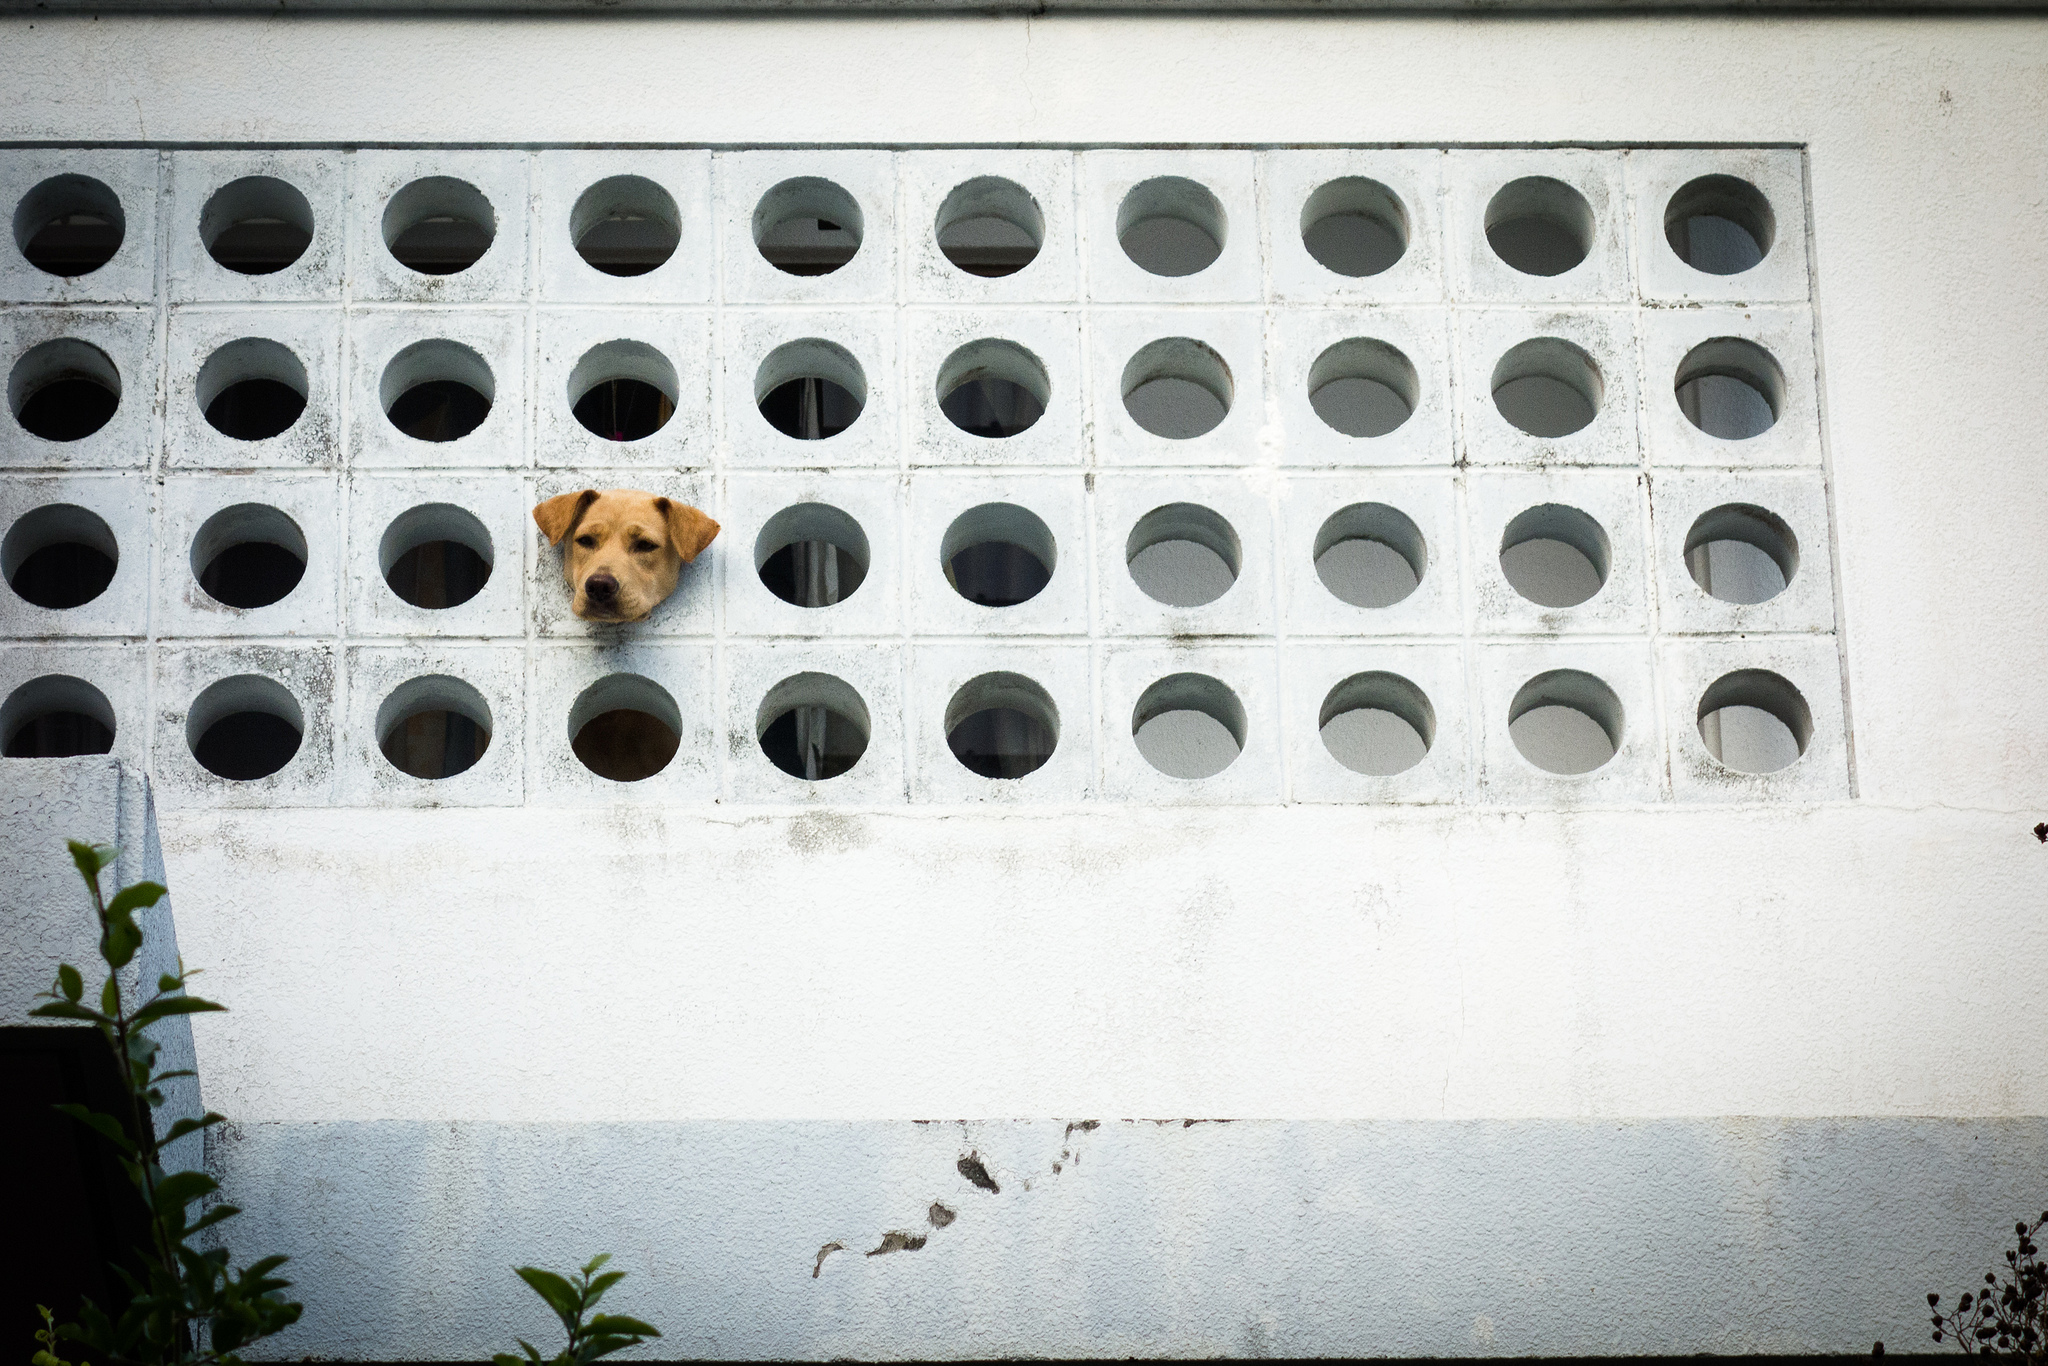 Dog stuck in a building/window